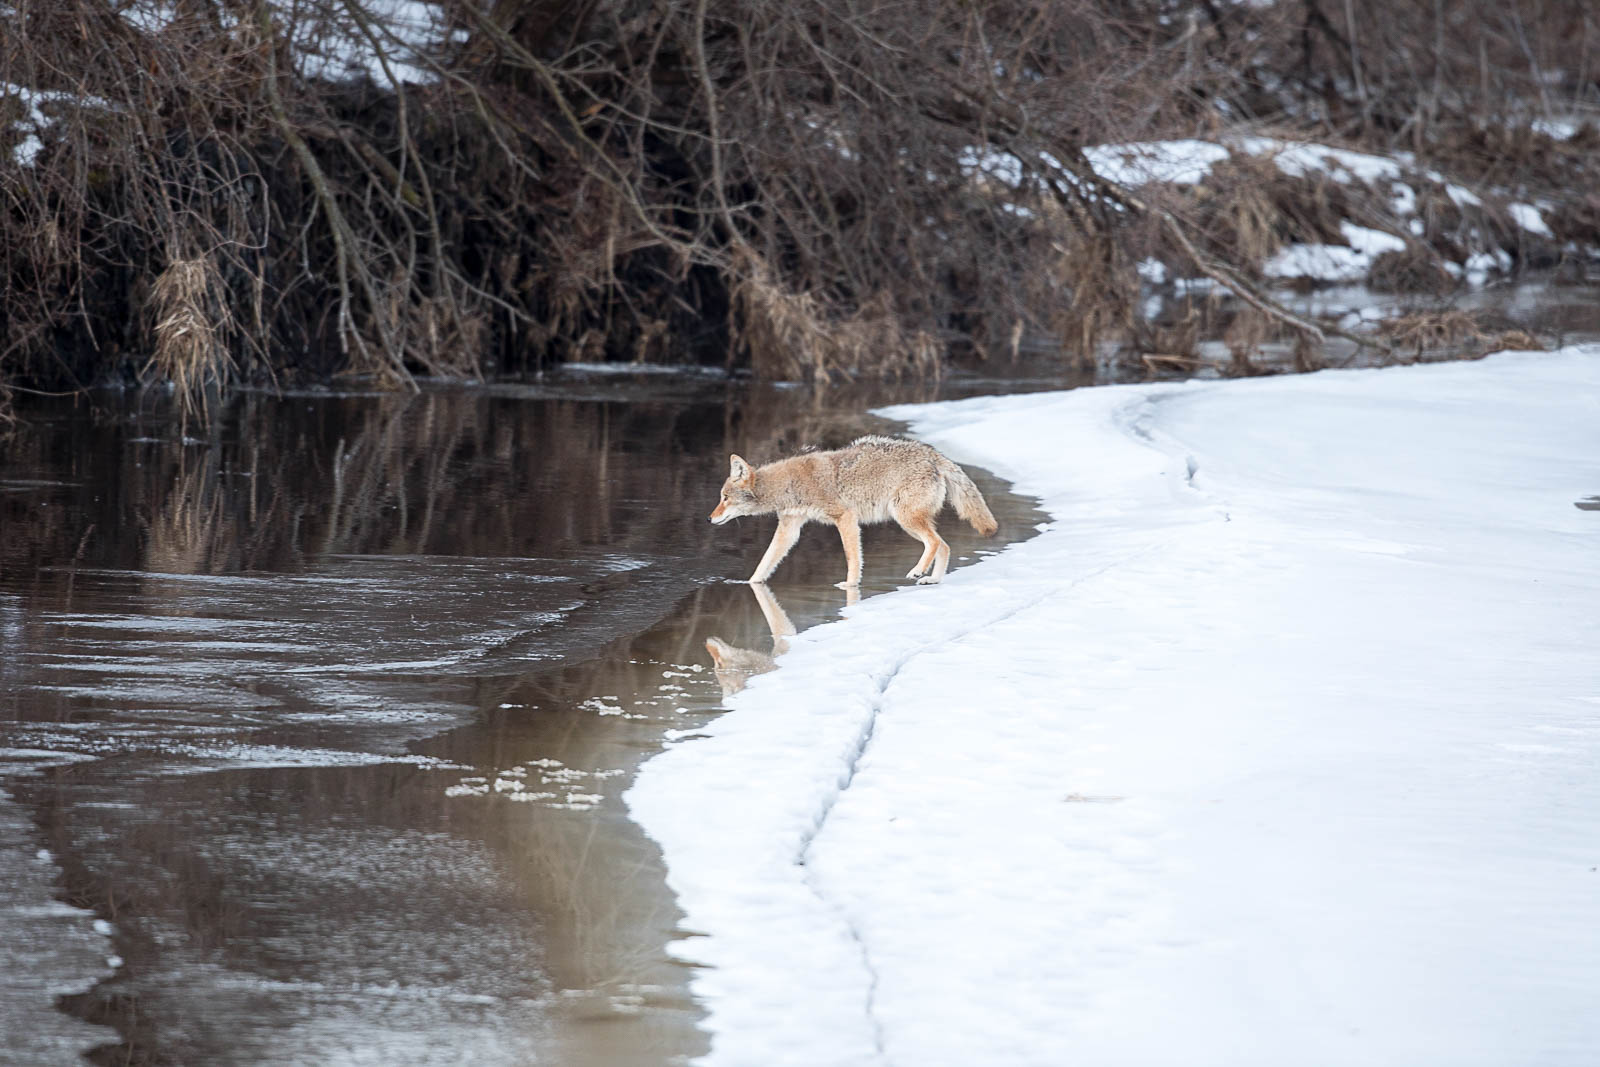 Coyote Walking through river - Wildlife photography